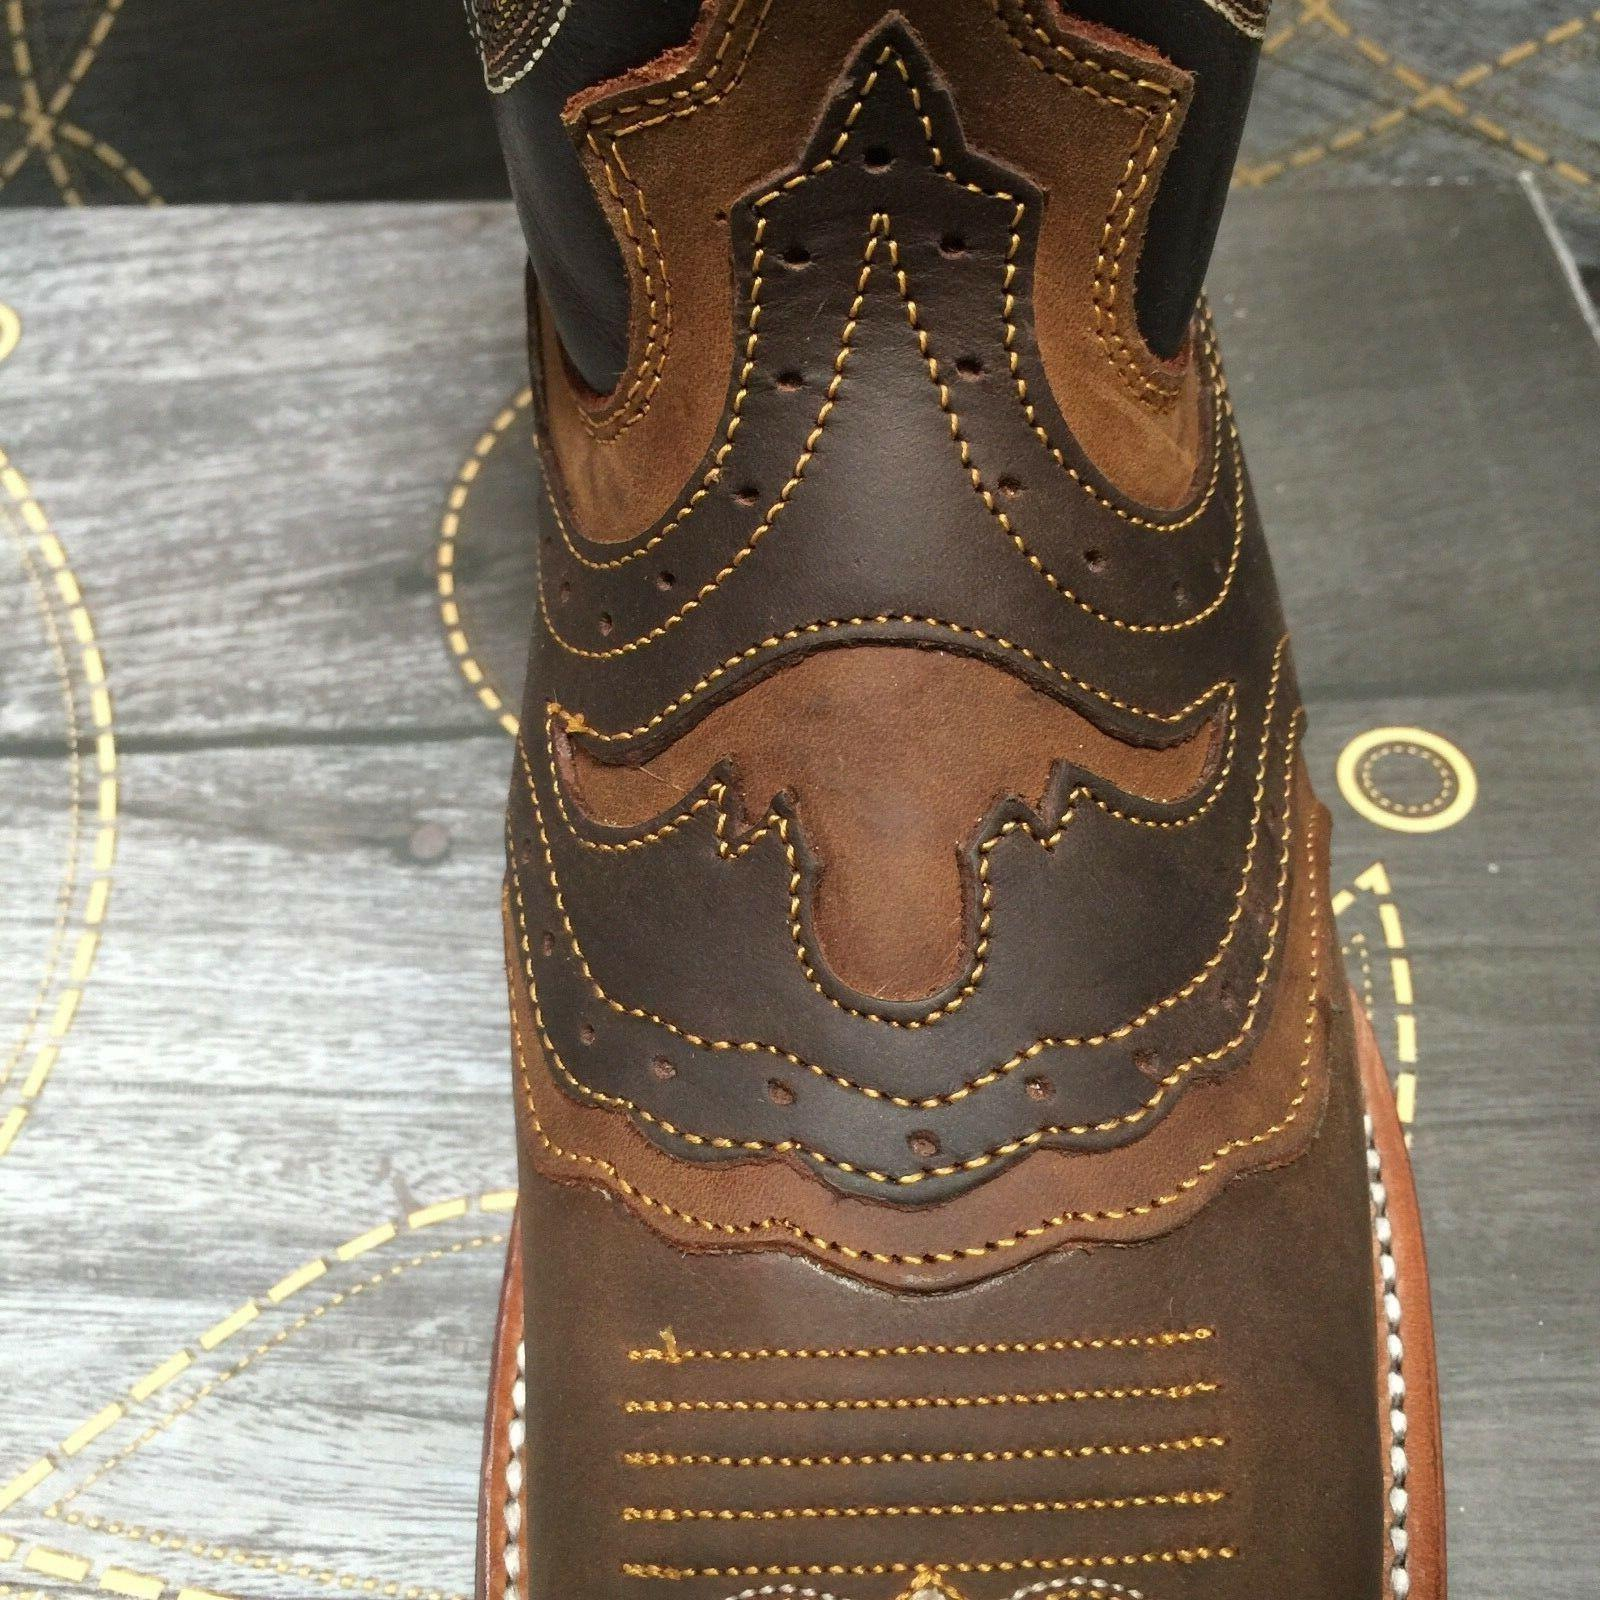 MEN'S RODEO GENUINE LEATHER TOE BOOTS BROWN